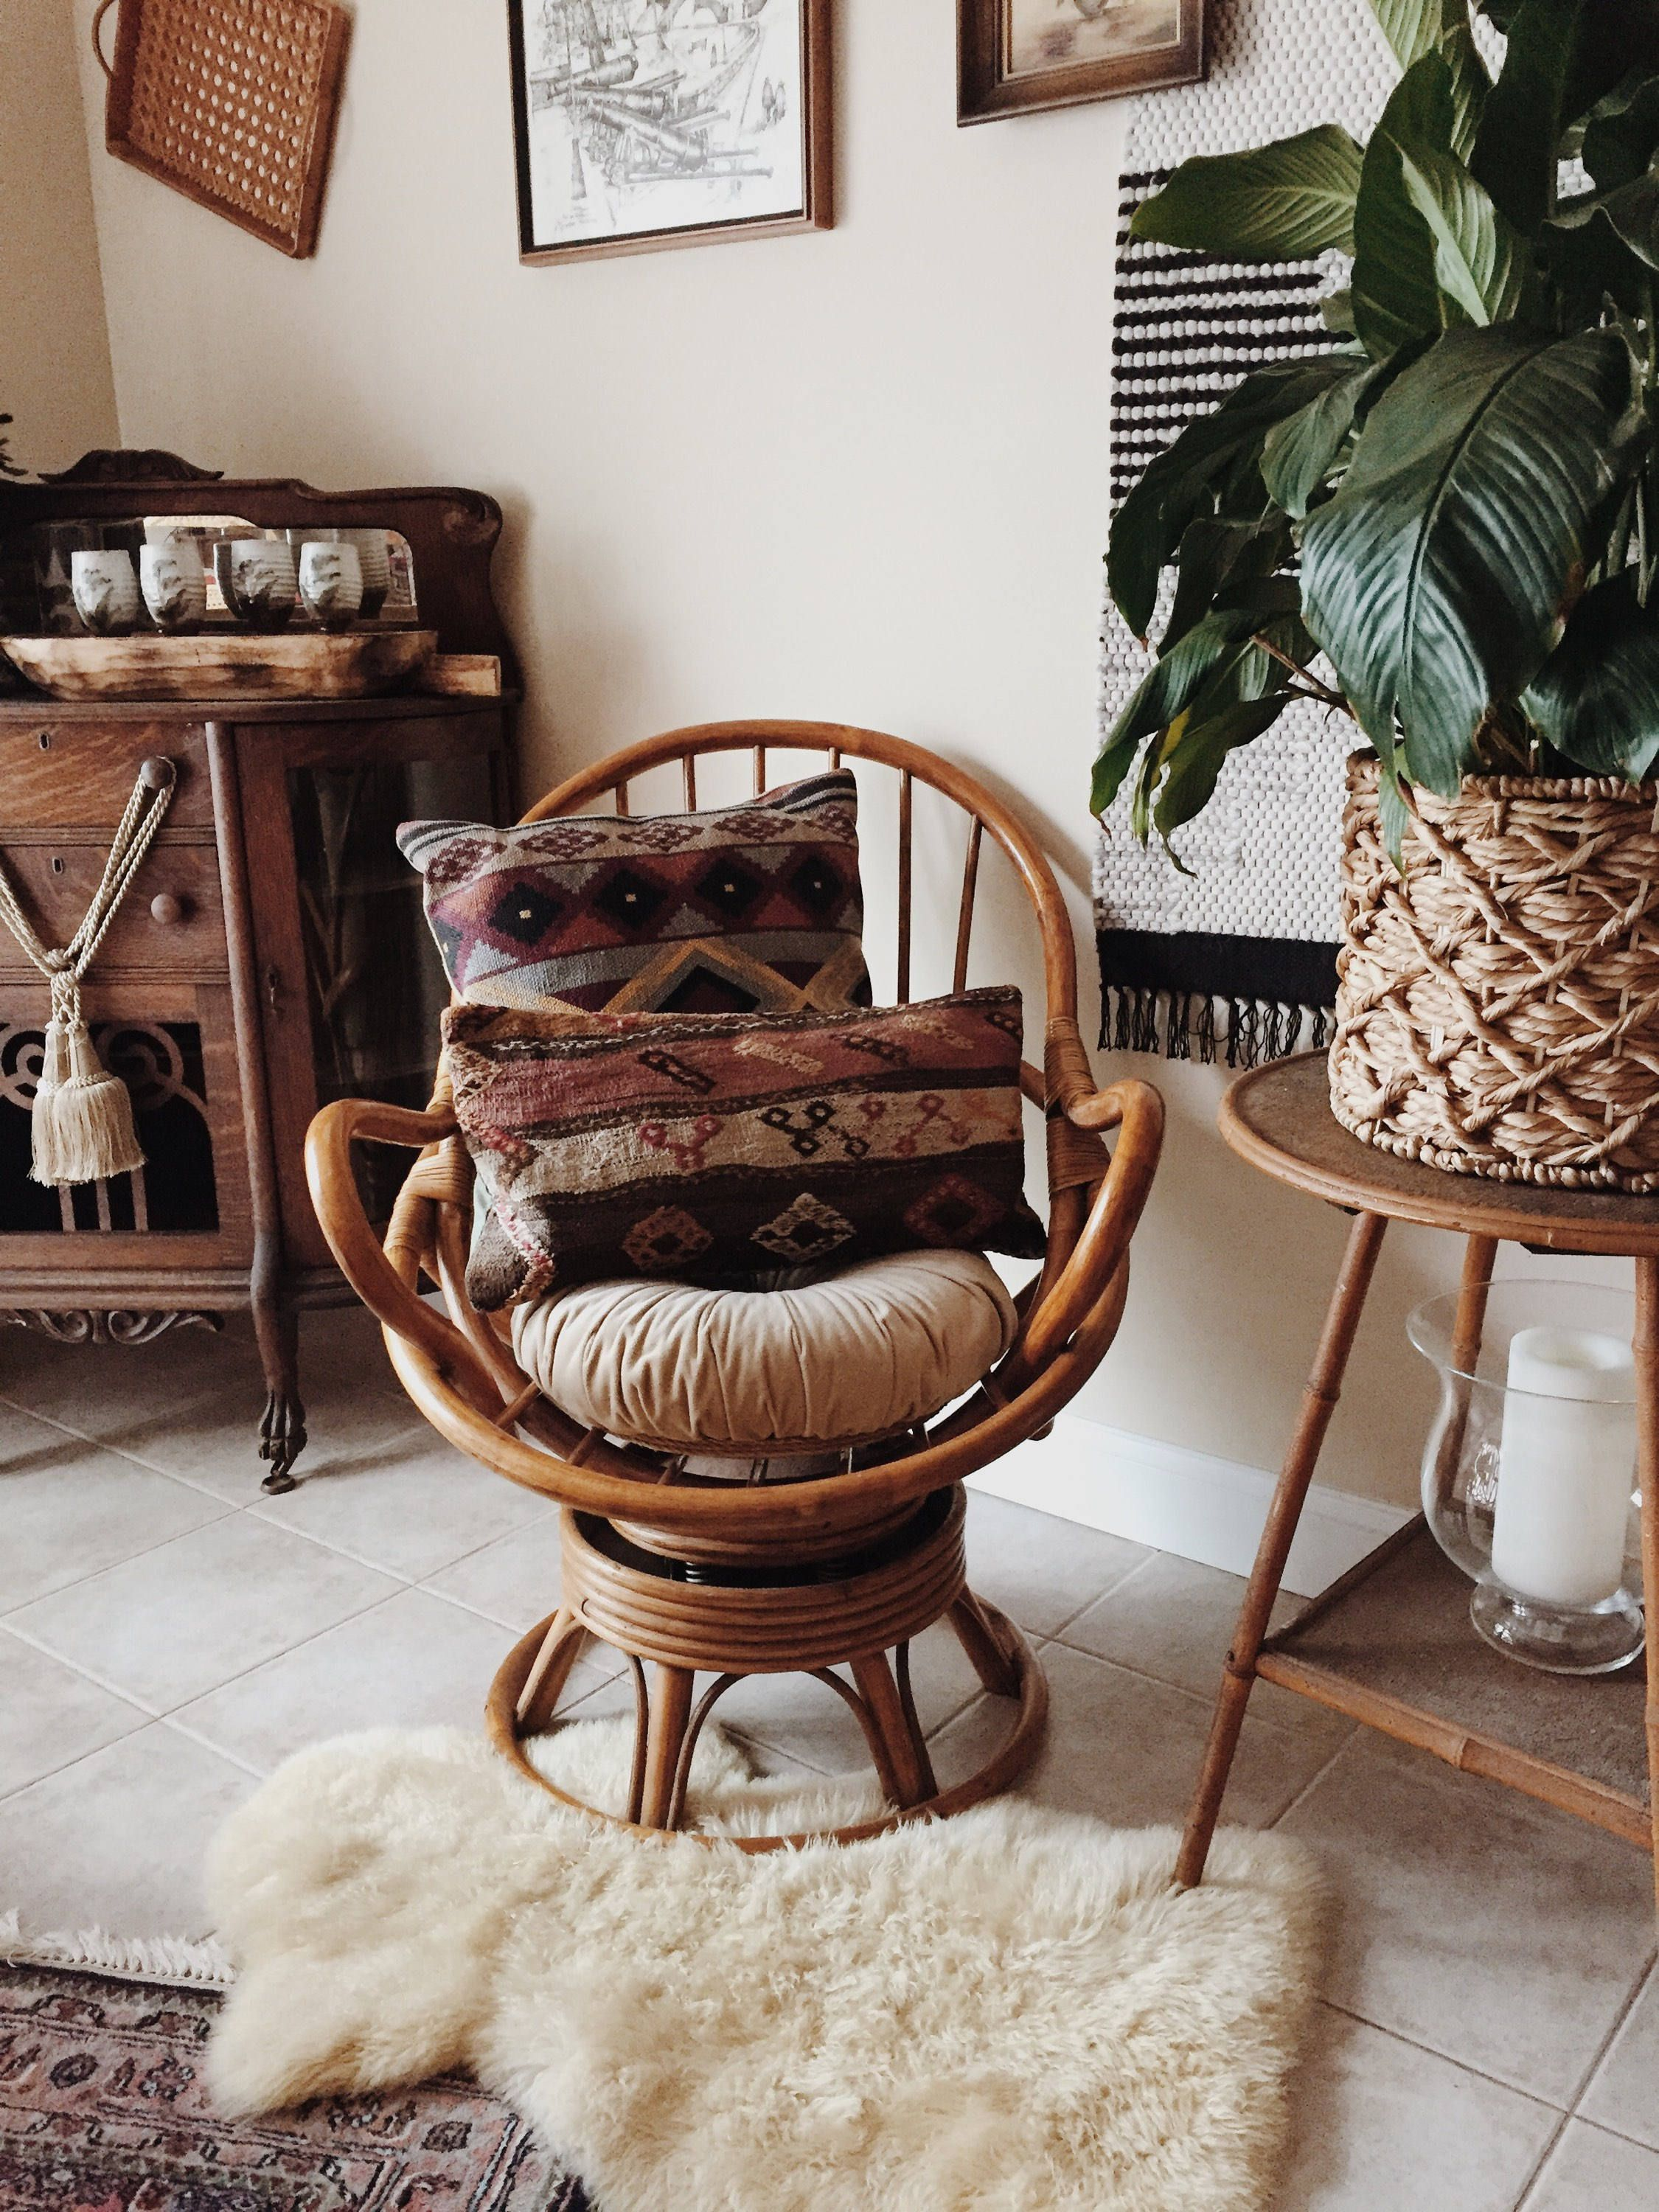 swivel chair cushions midcentury modern mid century rattan vintage bamboo boho not included condition great